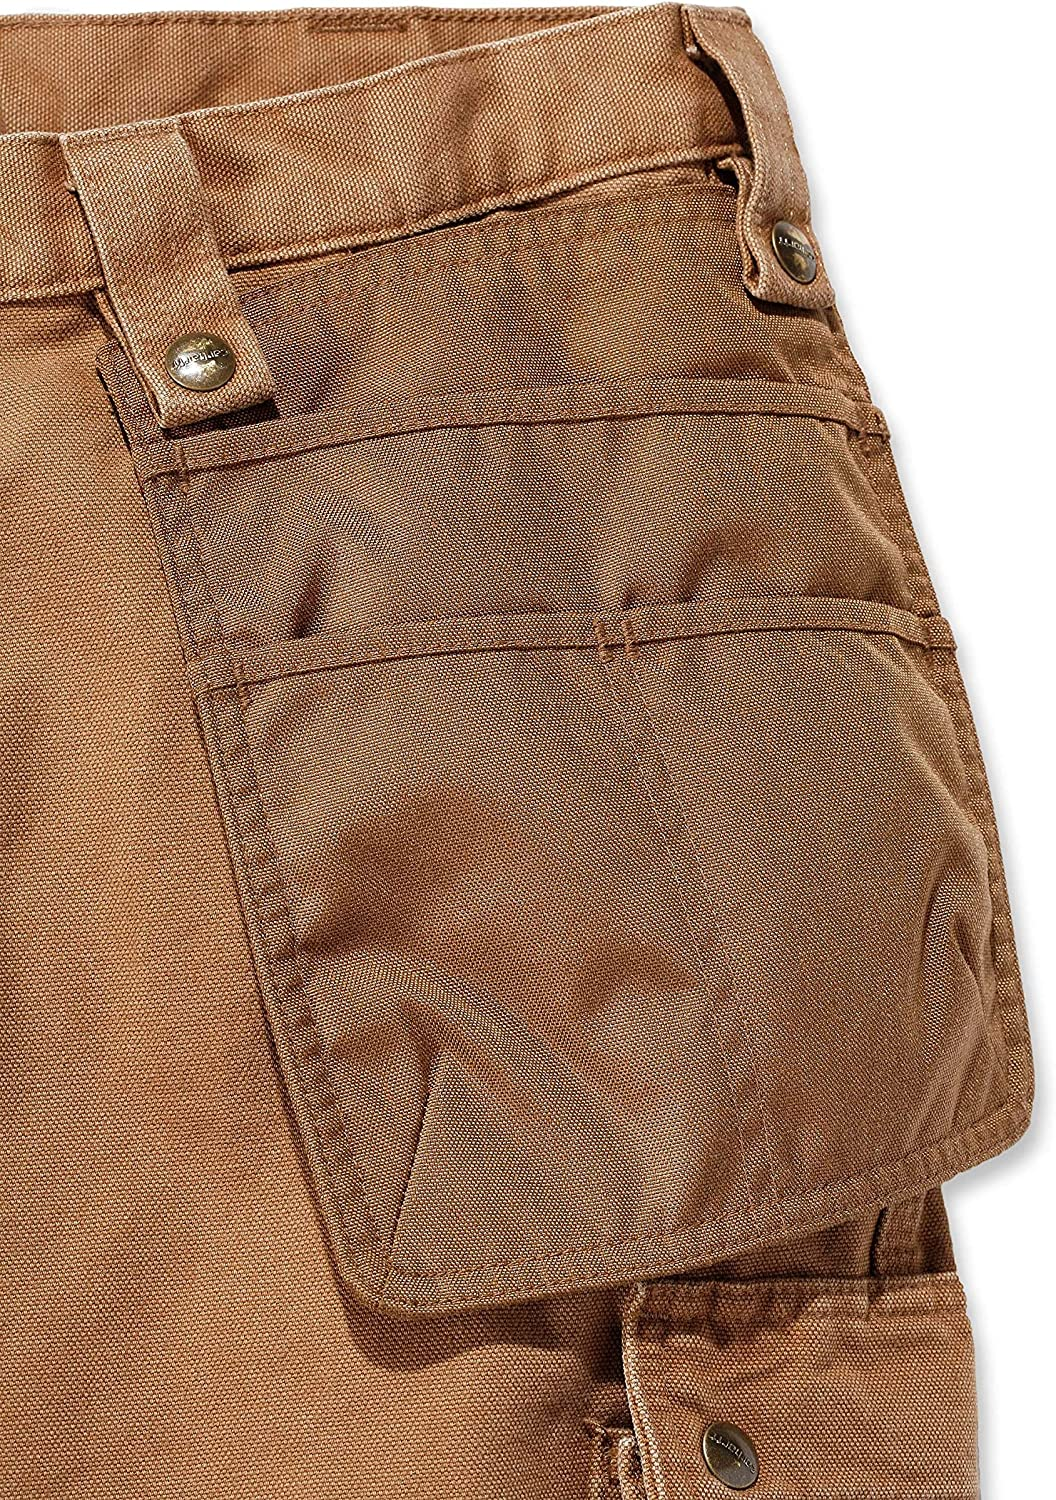 Carhartt Mens Washed Duck Multipocket Durable Cargo Pants Trousers Carhartt Brown